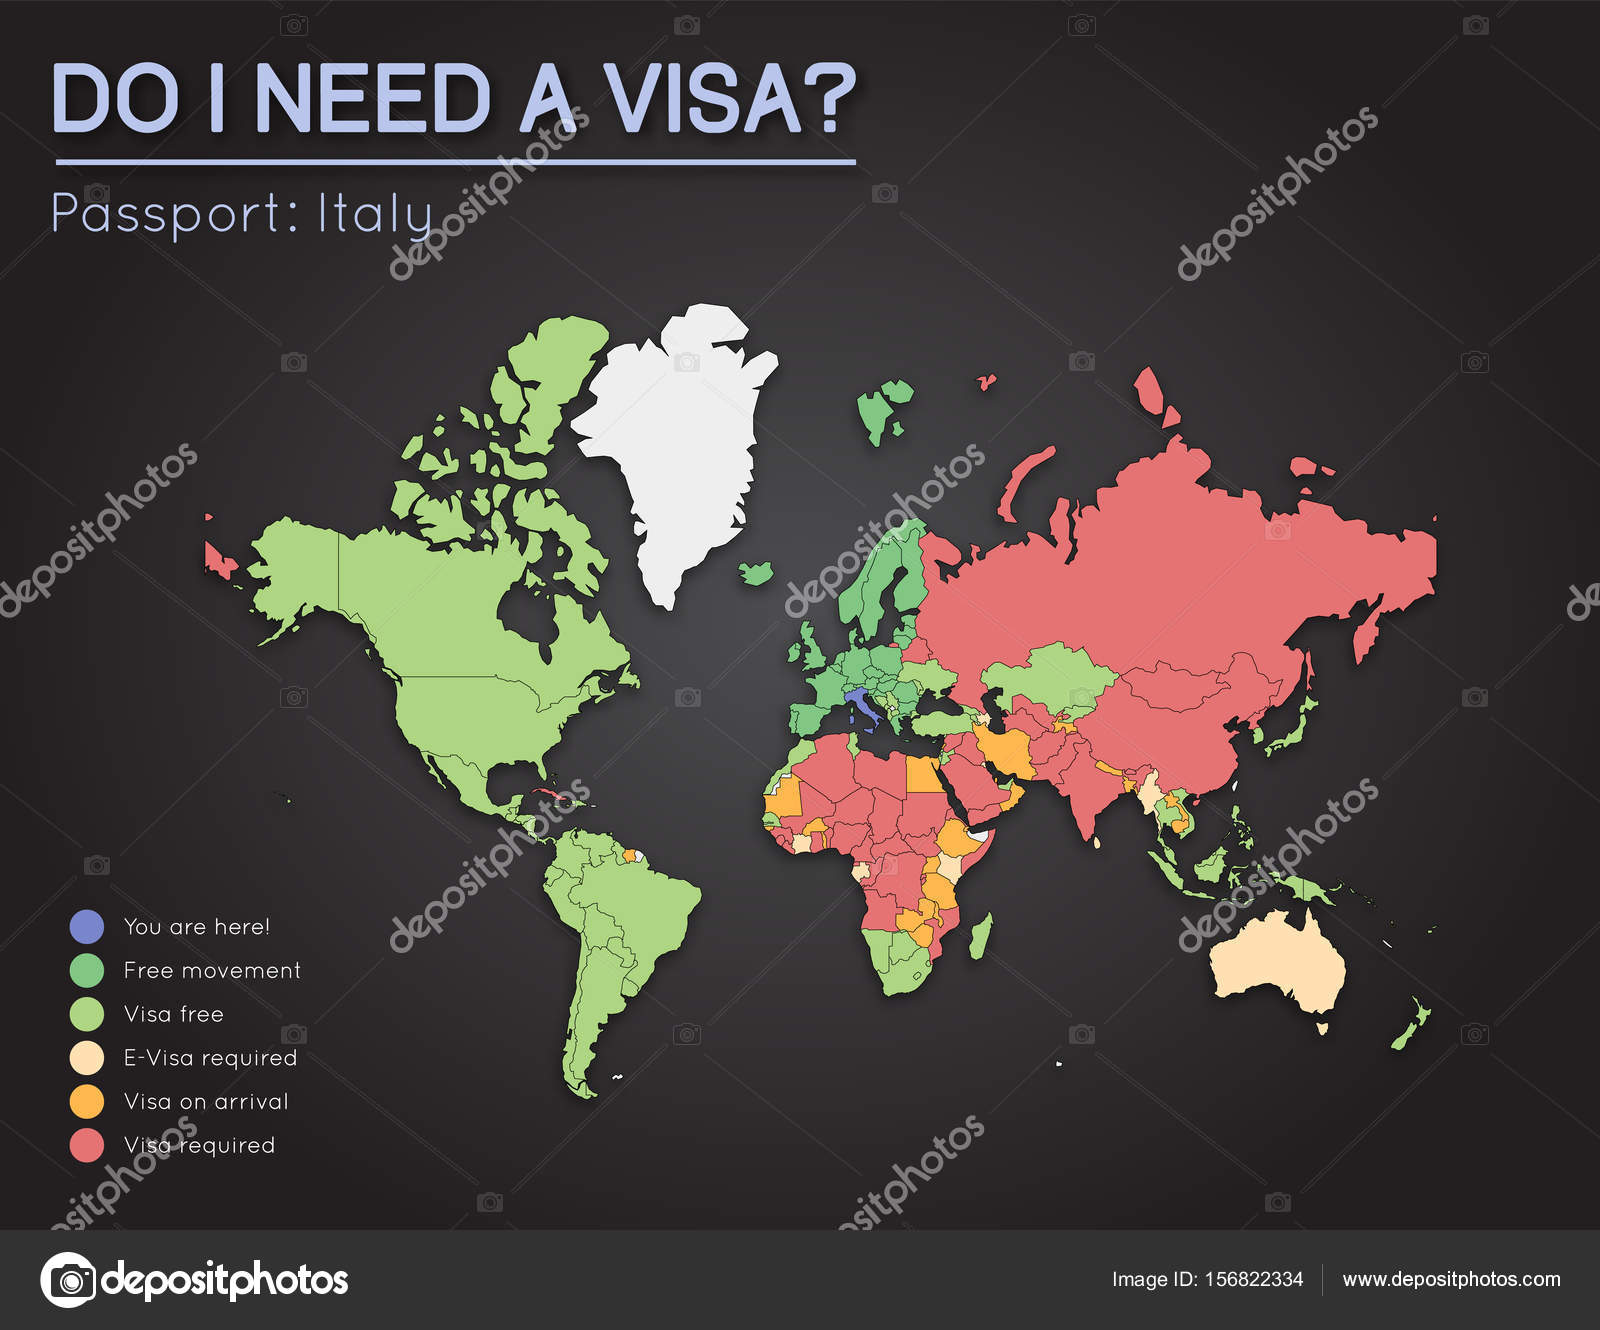 Visas information for italian republic passport holders year 2017 visas information for italian republic passport holders year 2017 world map infographics showing visa requirements for all countries vector illustration gumiabroncs Images